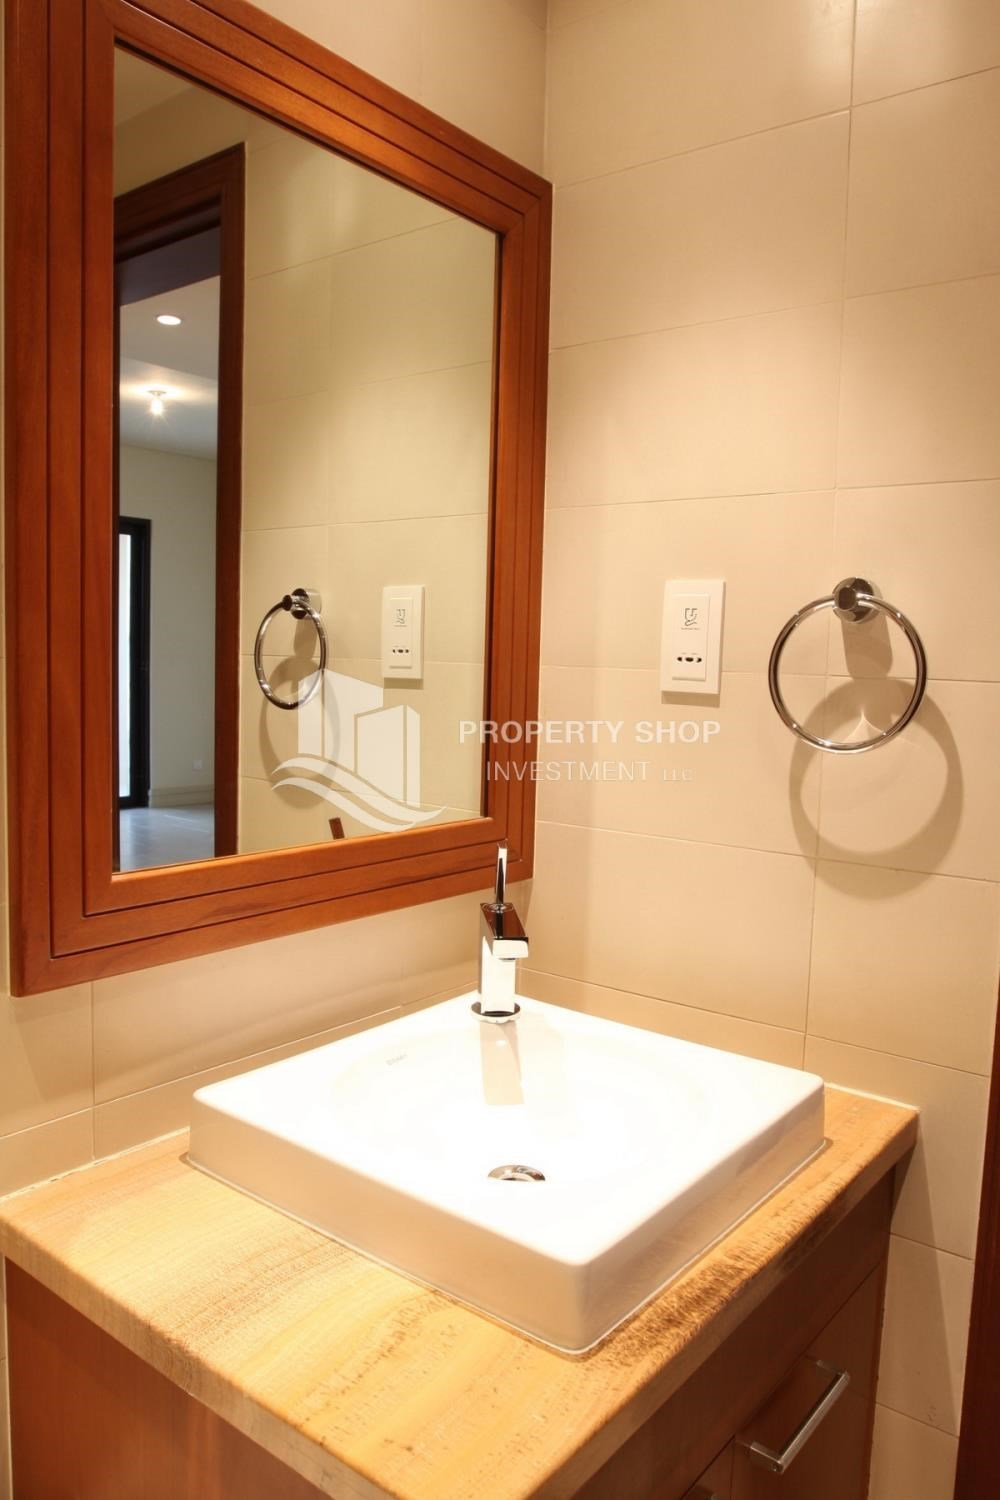 Bathroom - Beautiful and unique living spaces in Saadiyat Beach Residences, 1BR Apt Available for rent! Zero Commission!